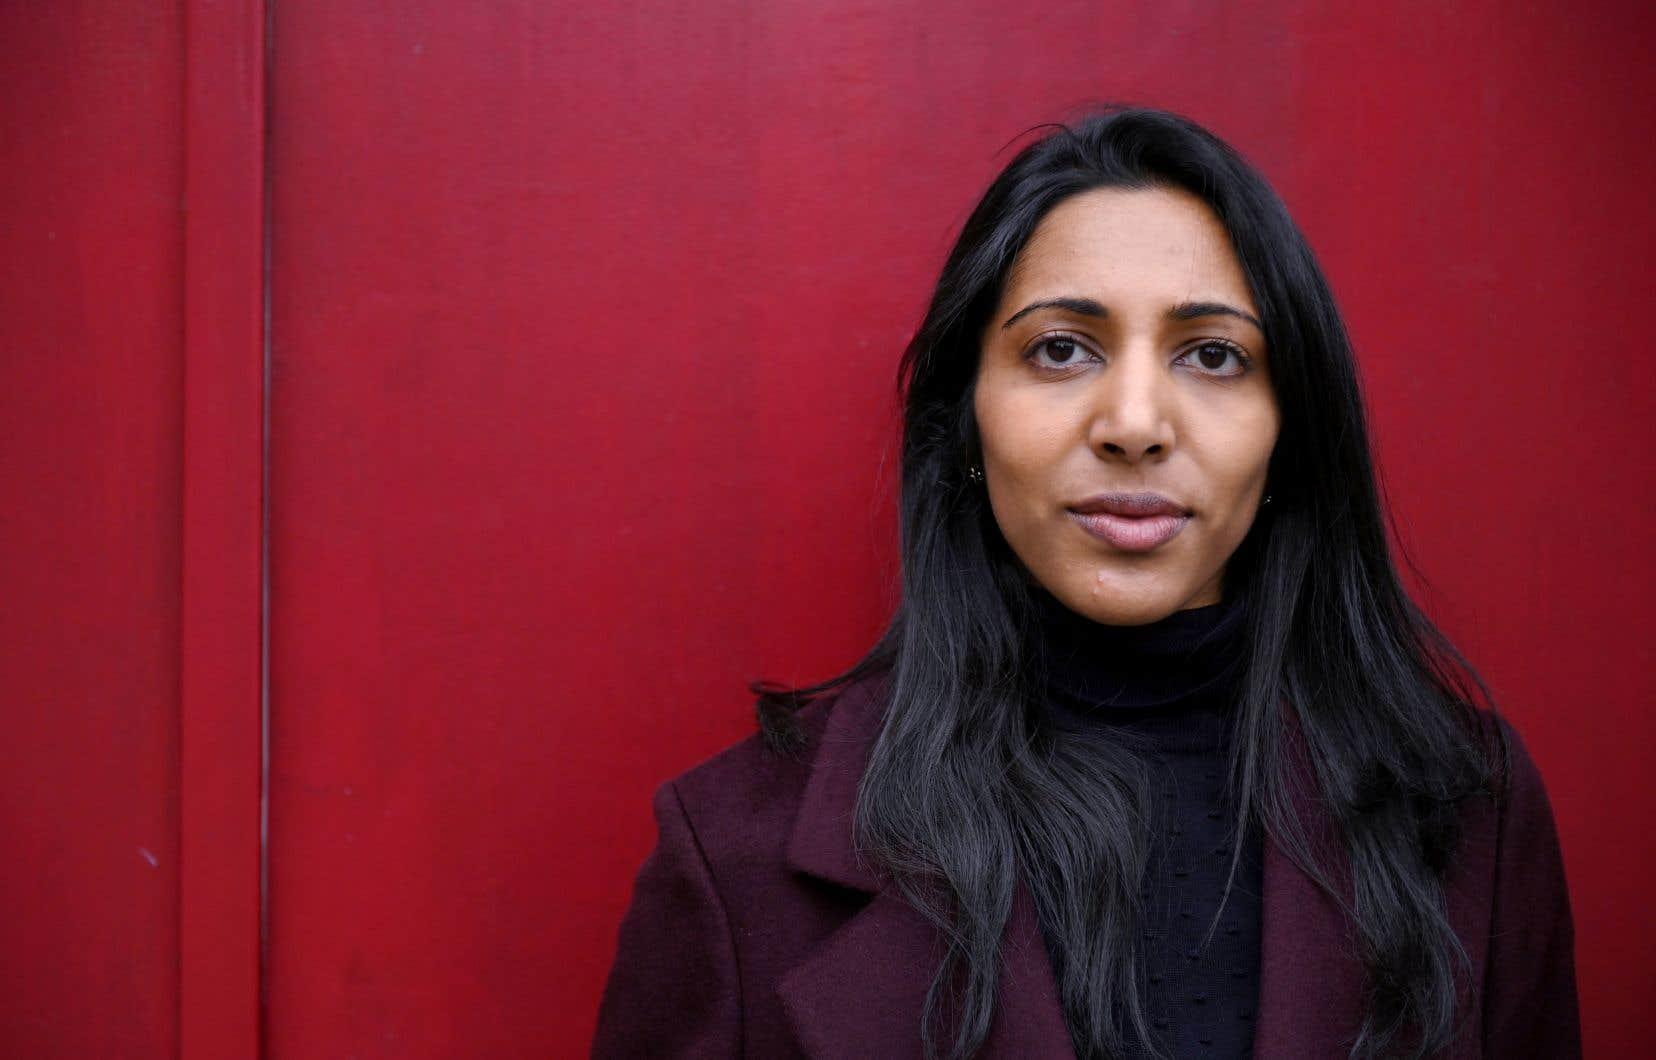 La fondatrice de la start-up Moonshot CVE, Vidhya Ramalingam